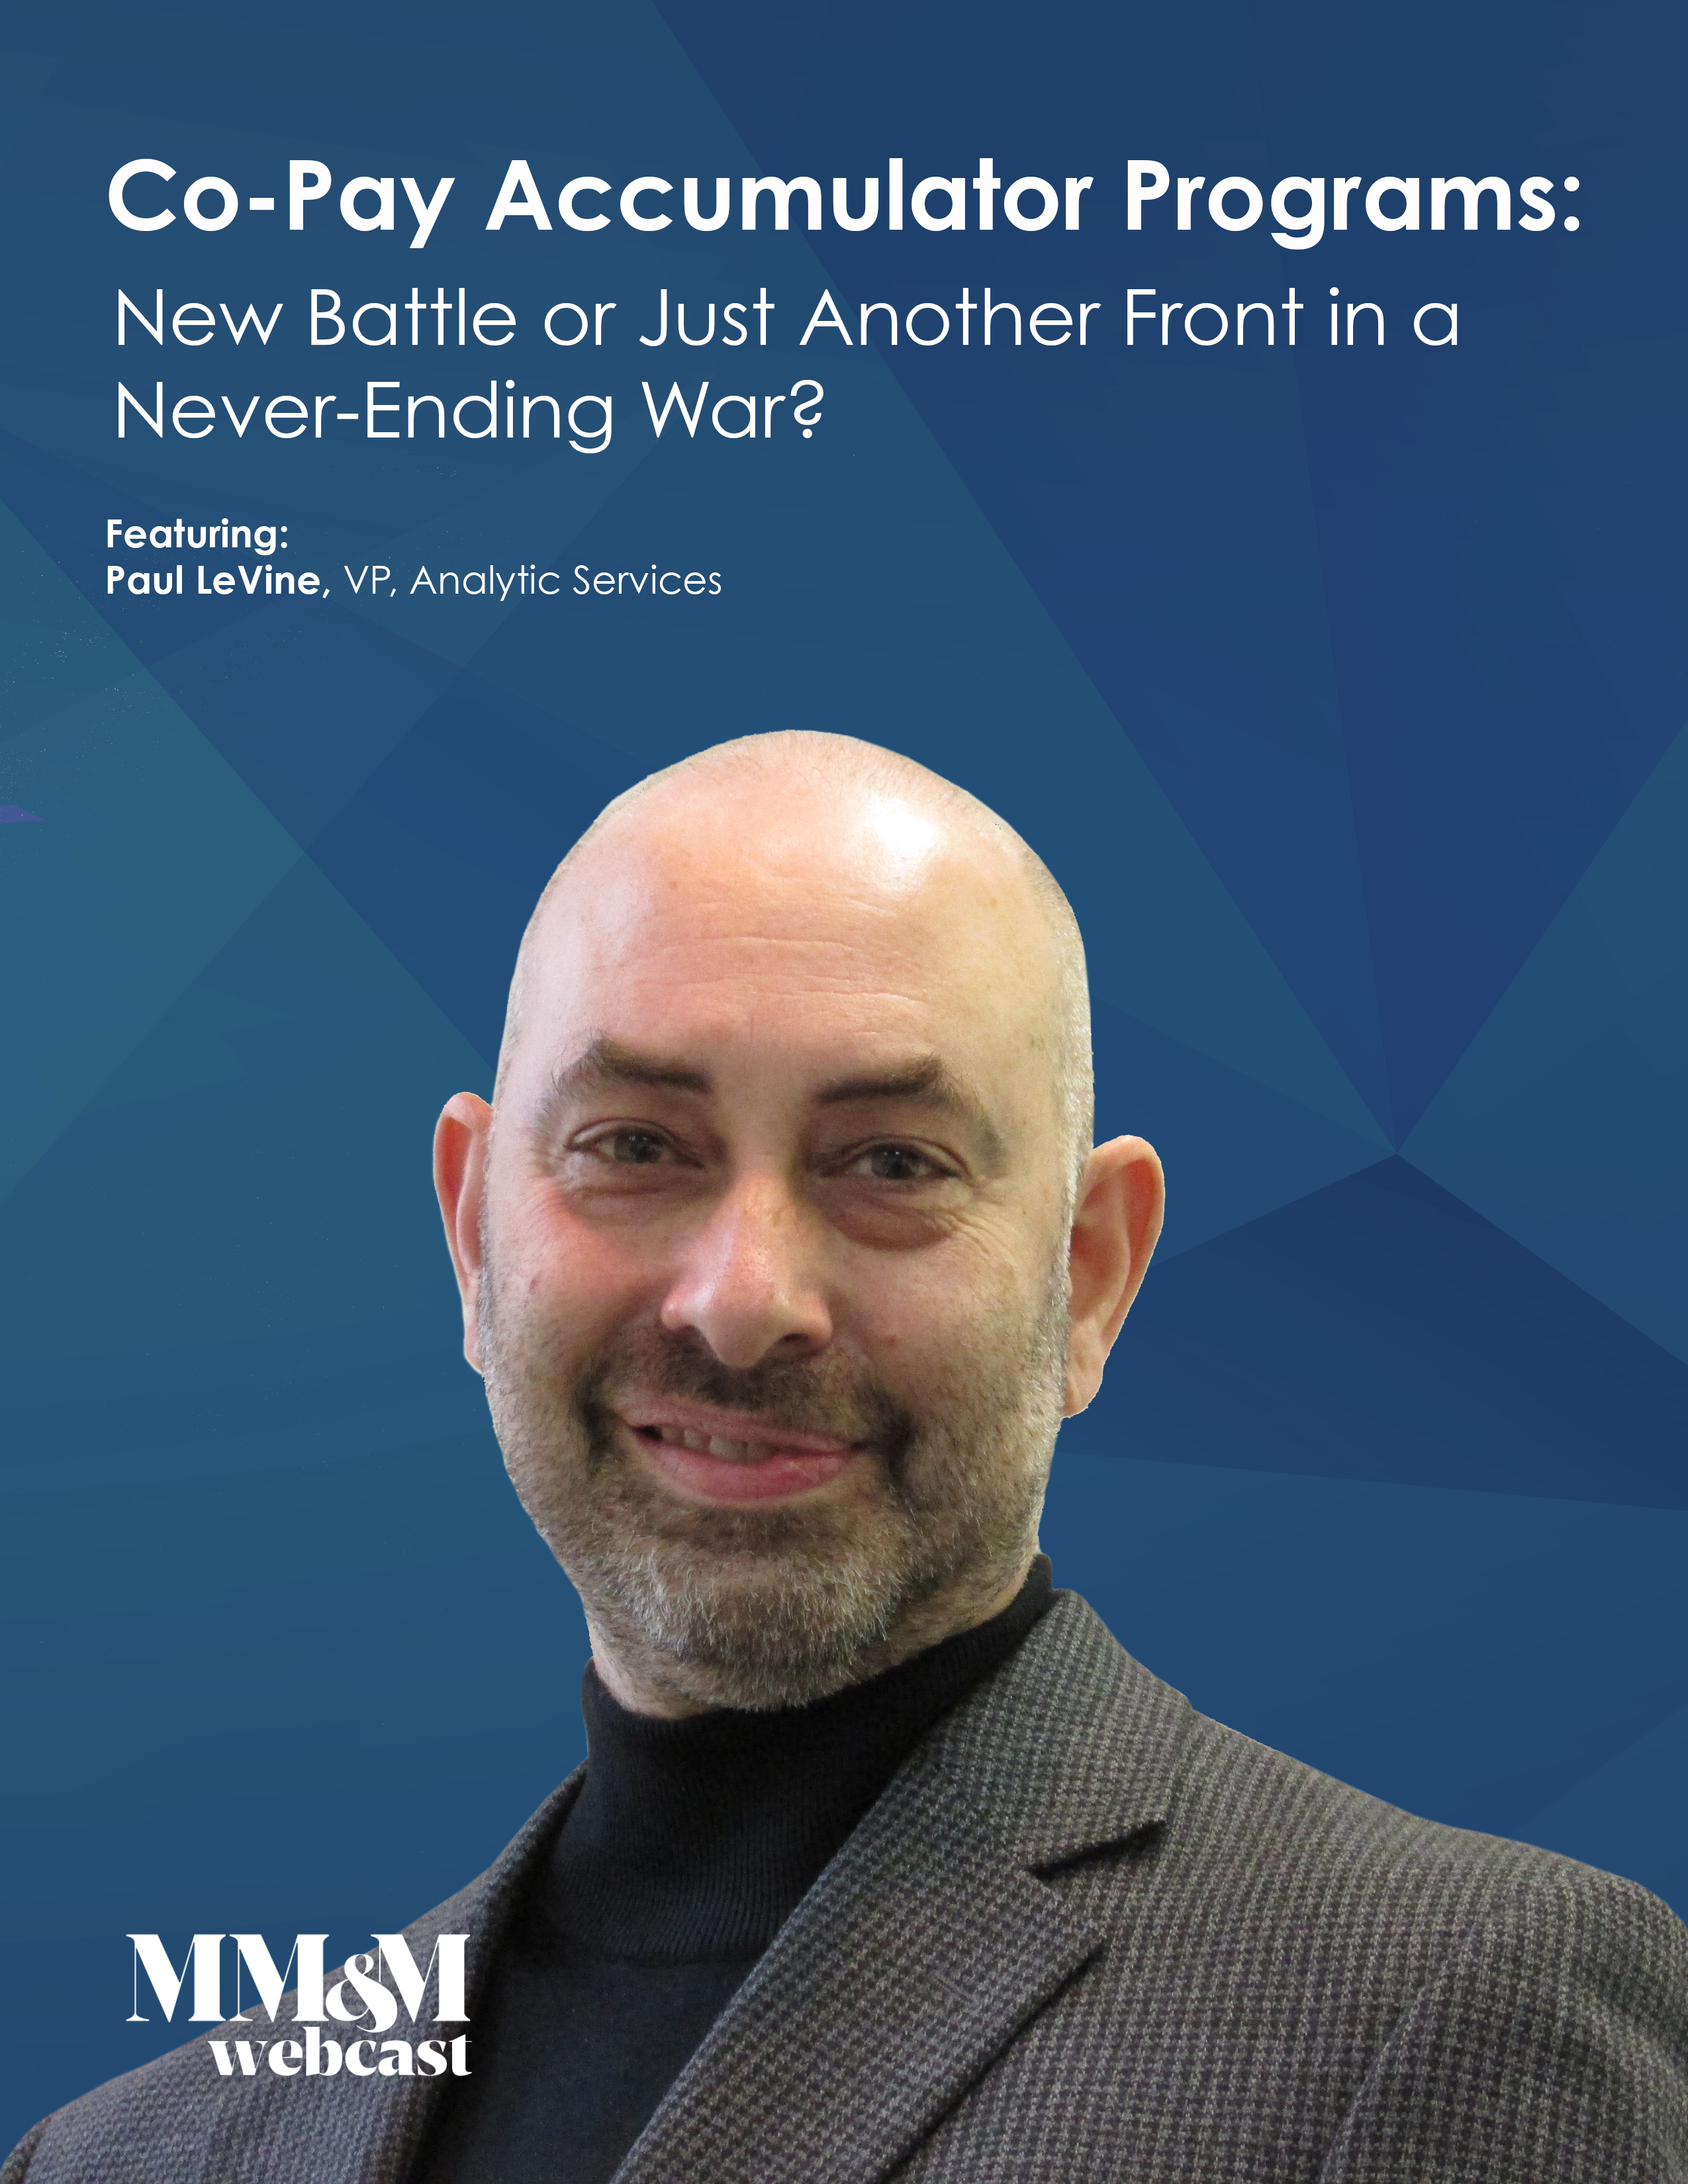 Webcast - Co-Pay Accumulator Programs: New Battle, of Just Another Front in a Never-ending War?